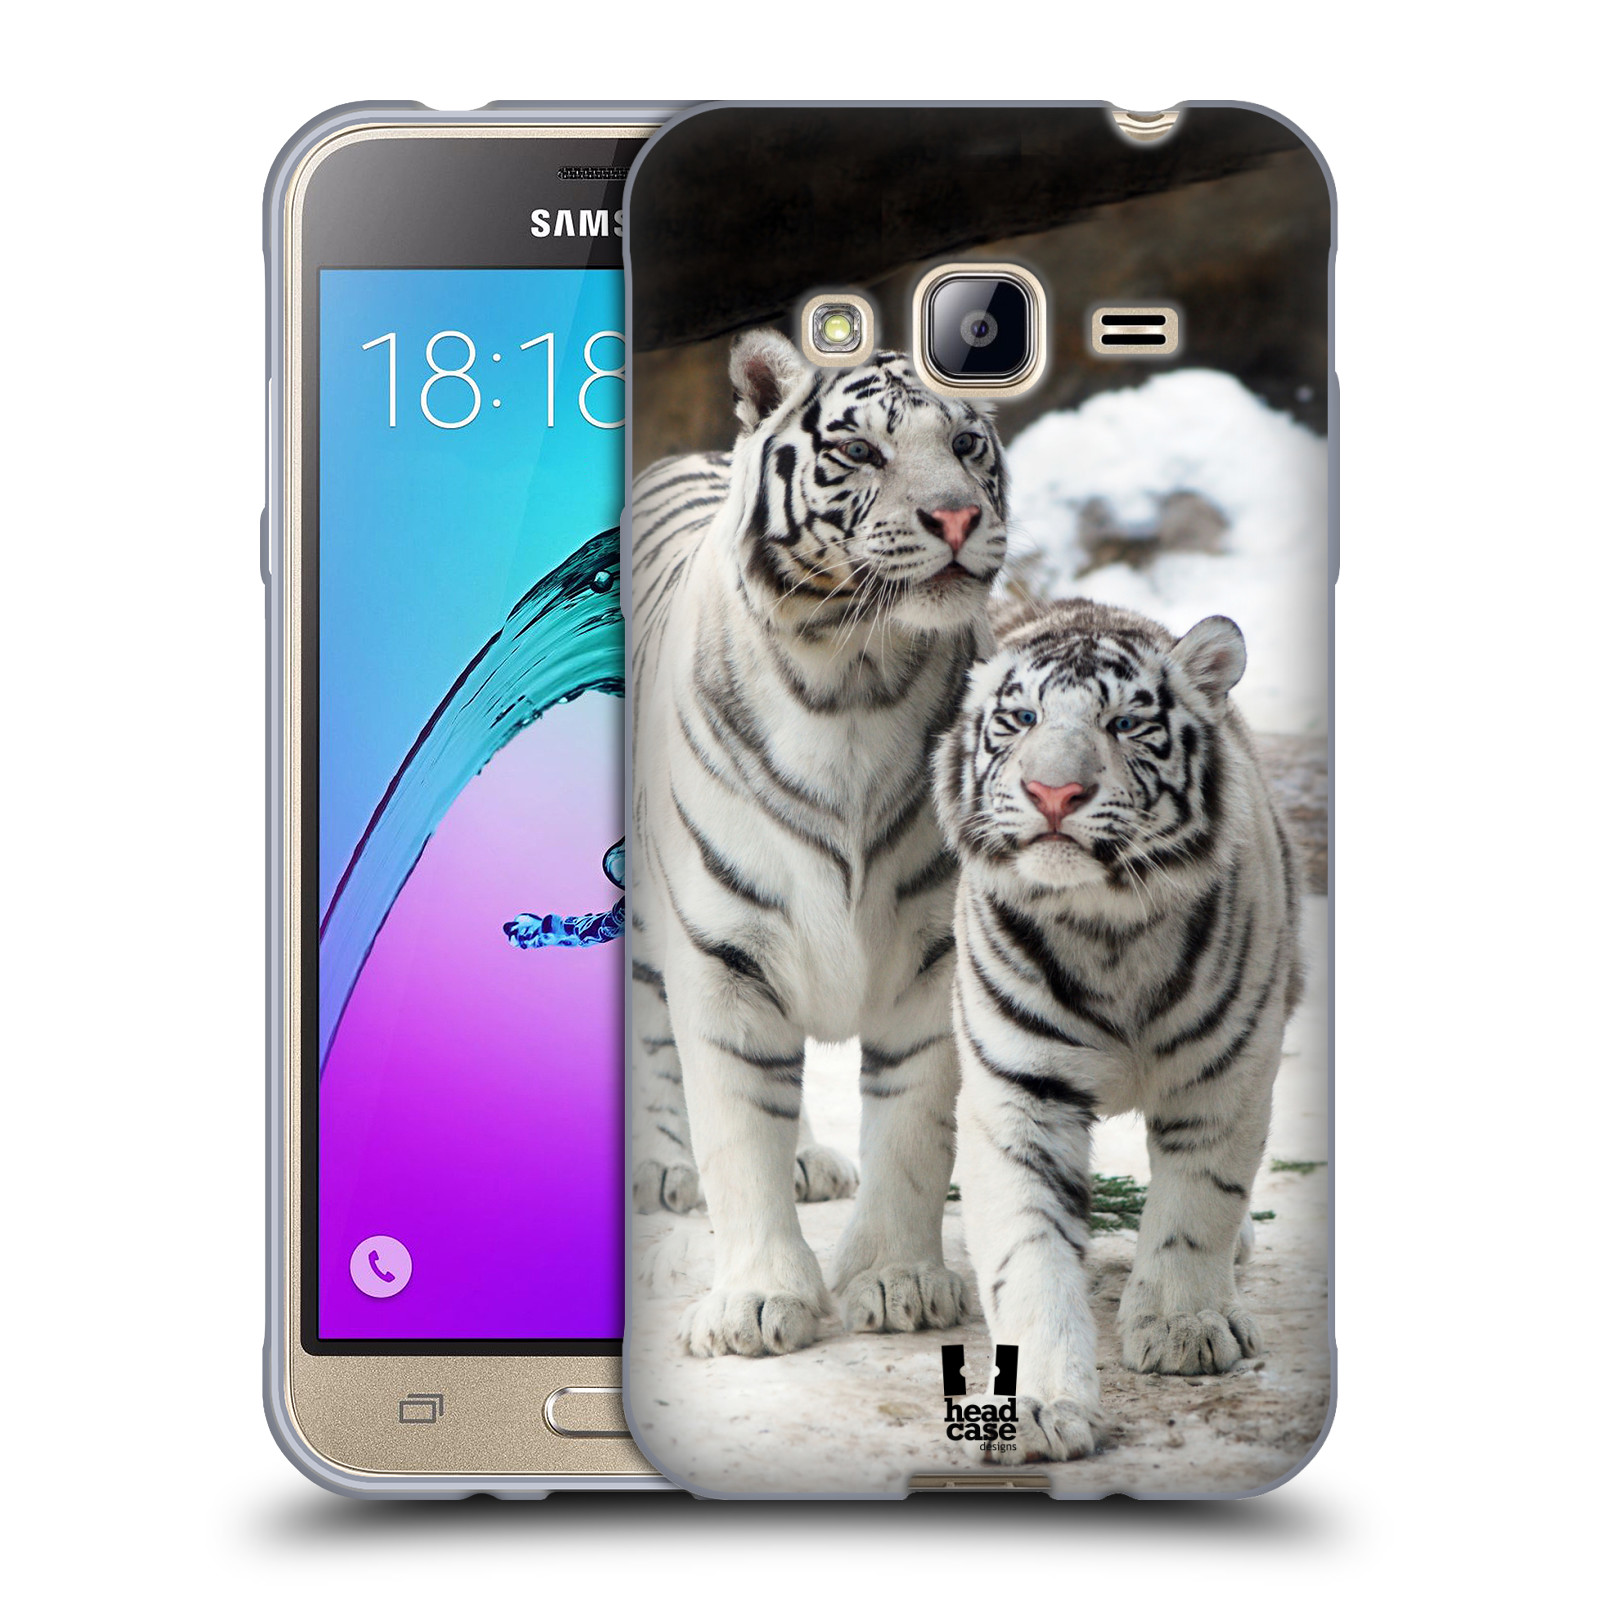 head case designs famous animals soft gel case for samsung galaxy j3 ebay. Black Bedroom Furniture Sets. Home Design Ideas